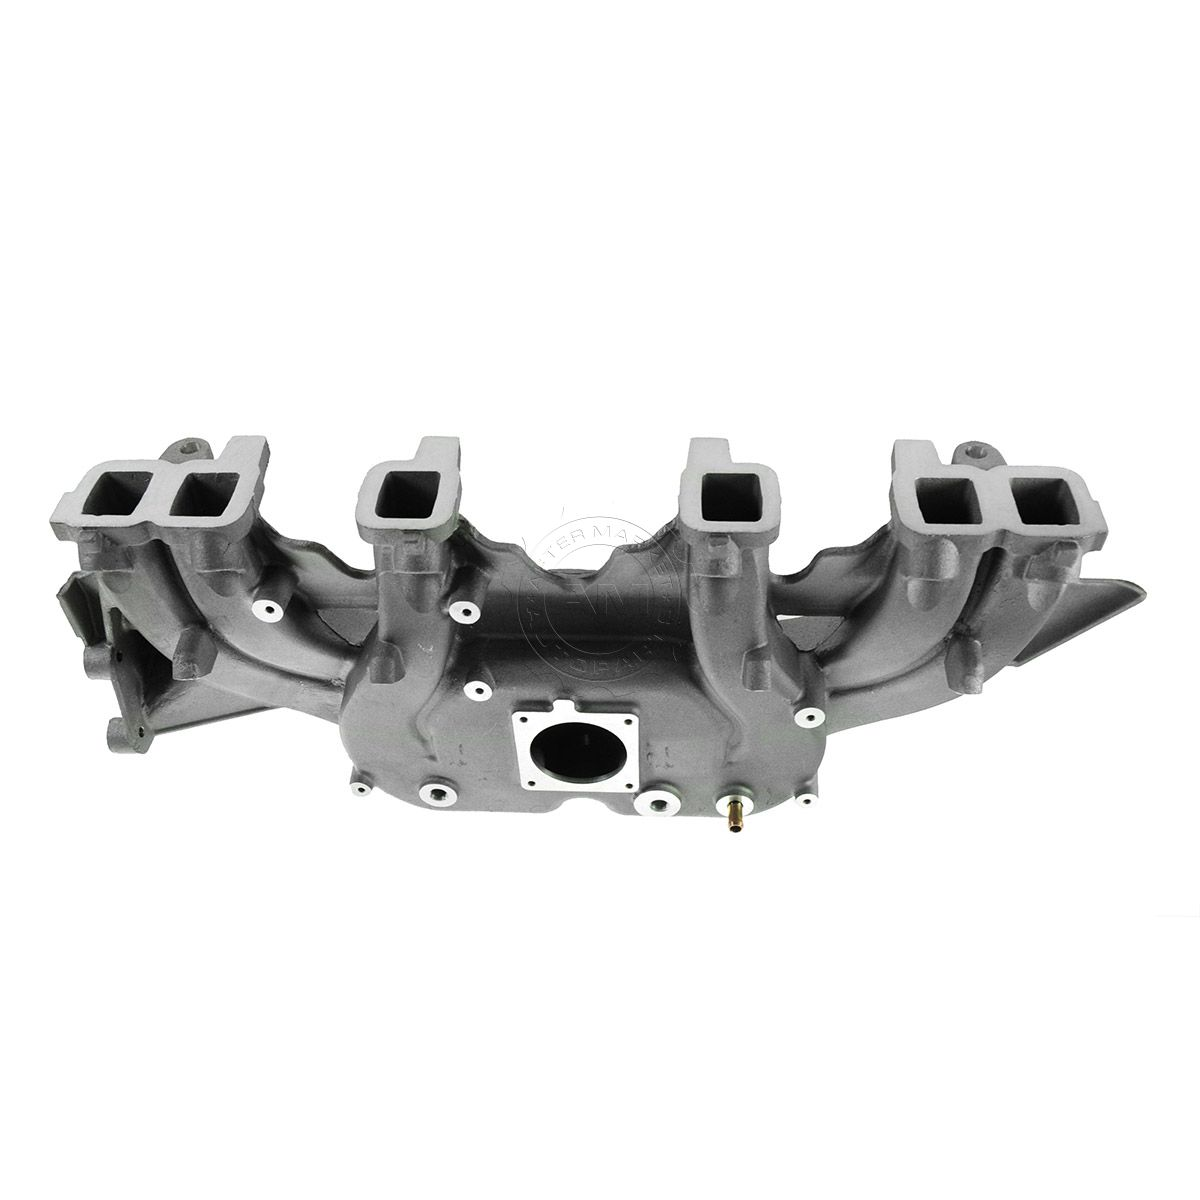 hight resolution of dorman intake manifold for jeep grand cherokee wrangler l6